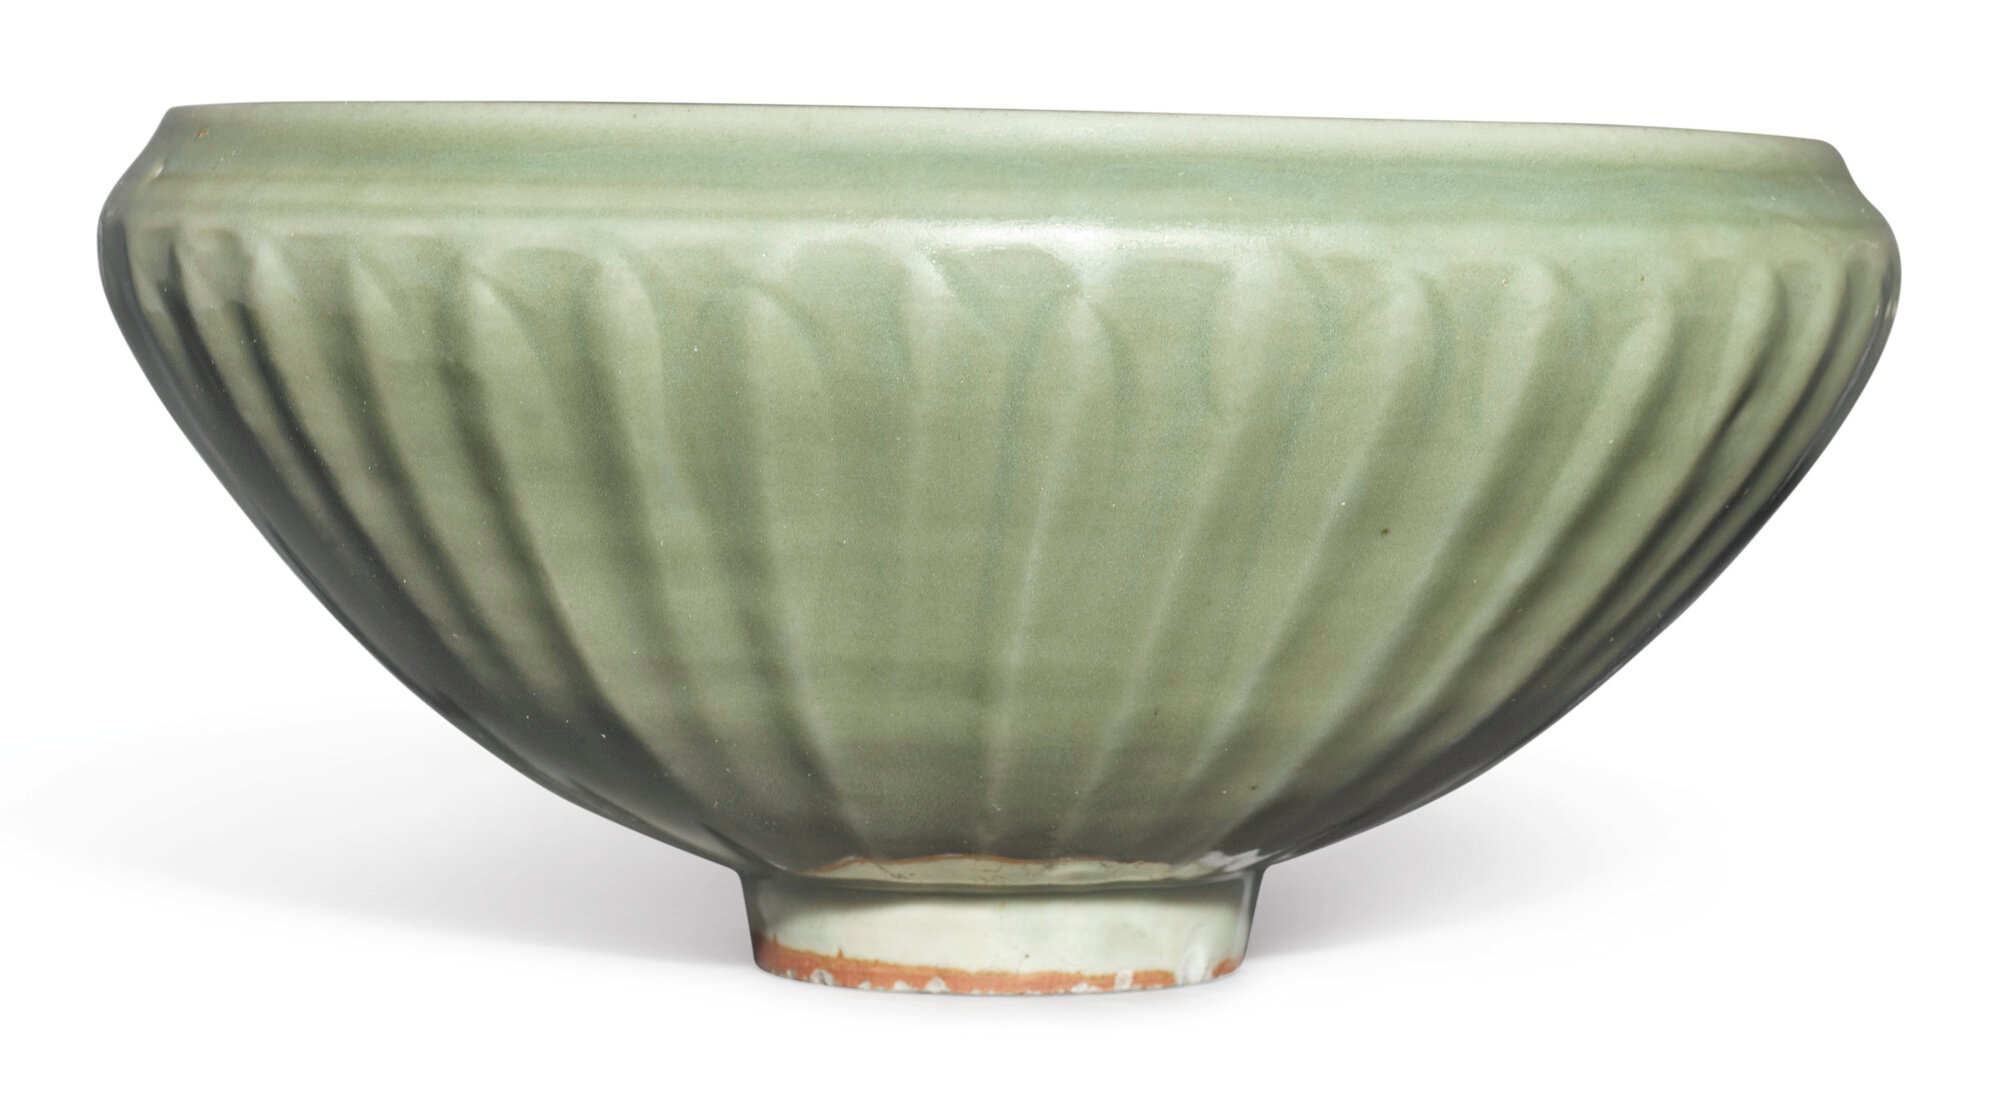 A large 'Longquan' celadon-glazed 'lotus' bowl, late Yuan - early Ming dynasty